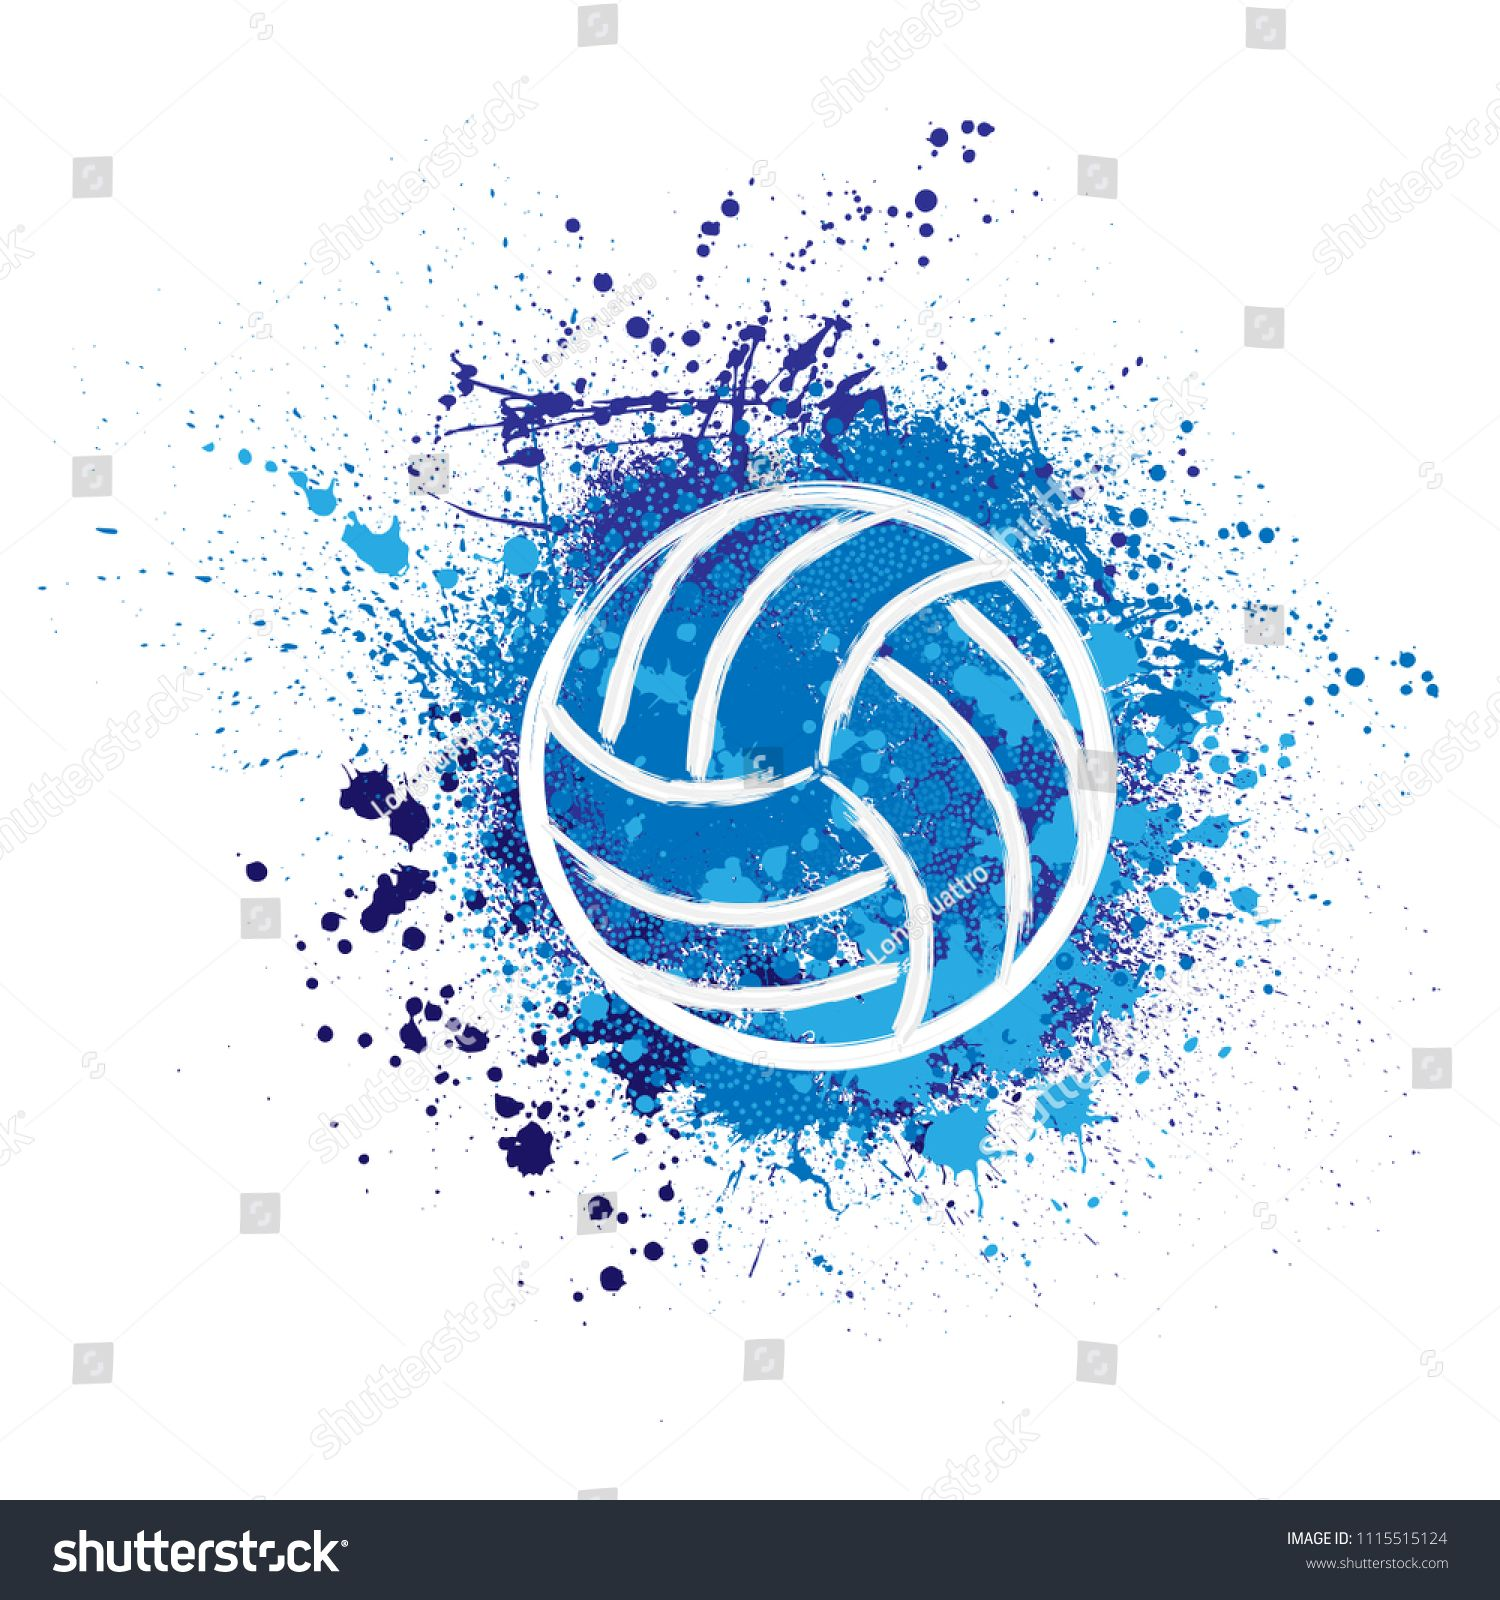 White Grunge Volleyball Ball Blue Ink Royalty Free Image Vector In 2020 Volleyball Wallpaper Volleyball Backgrounds Volleyball